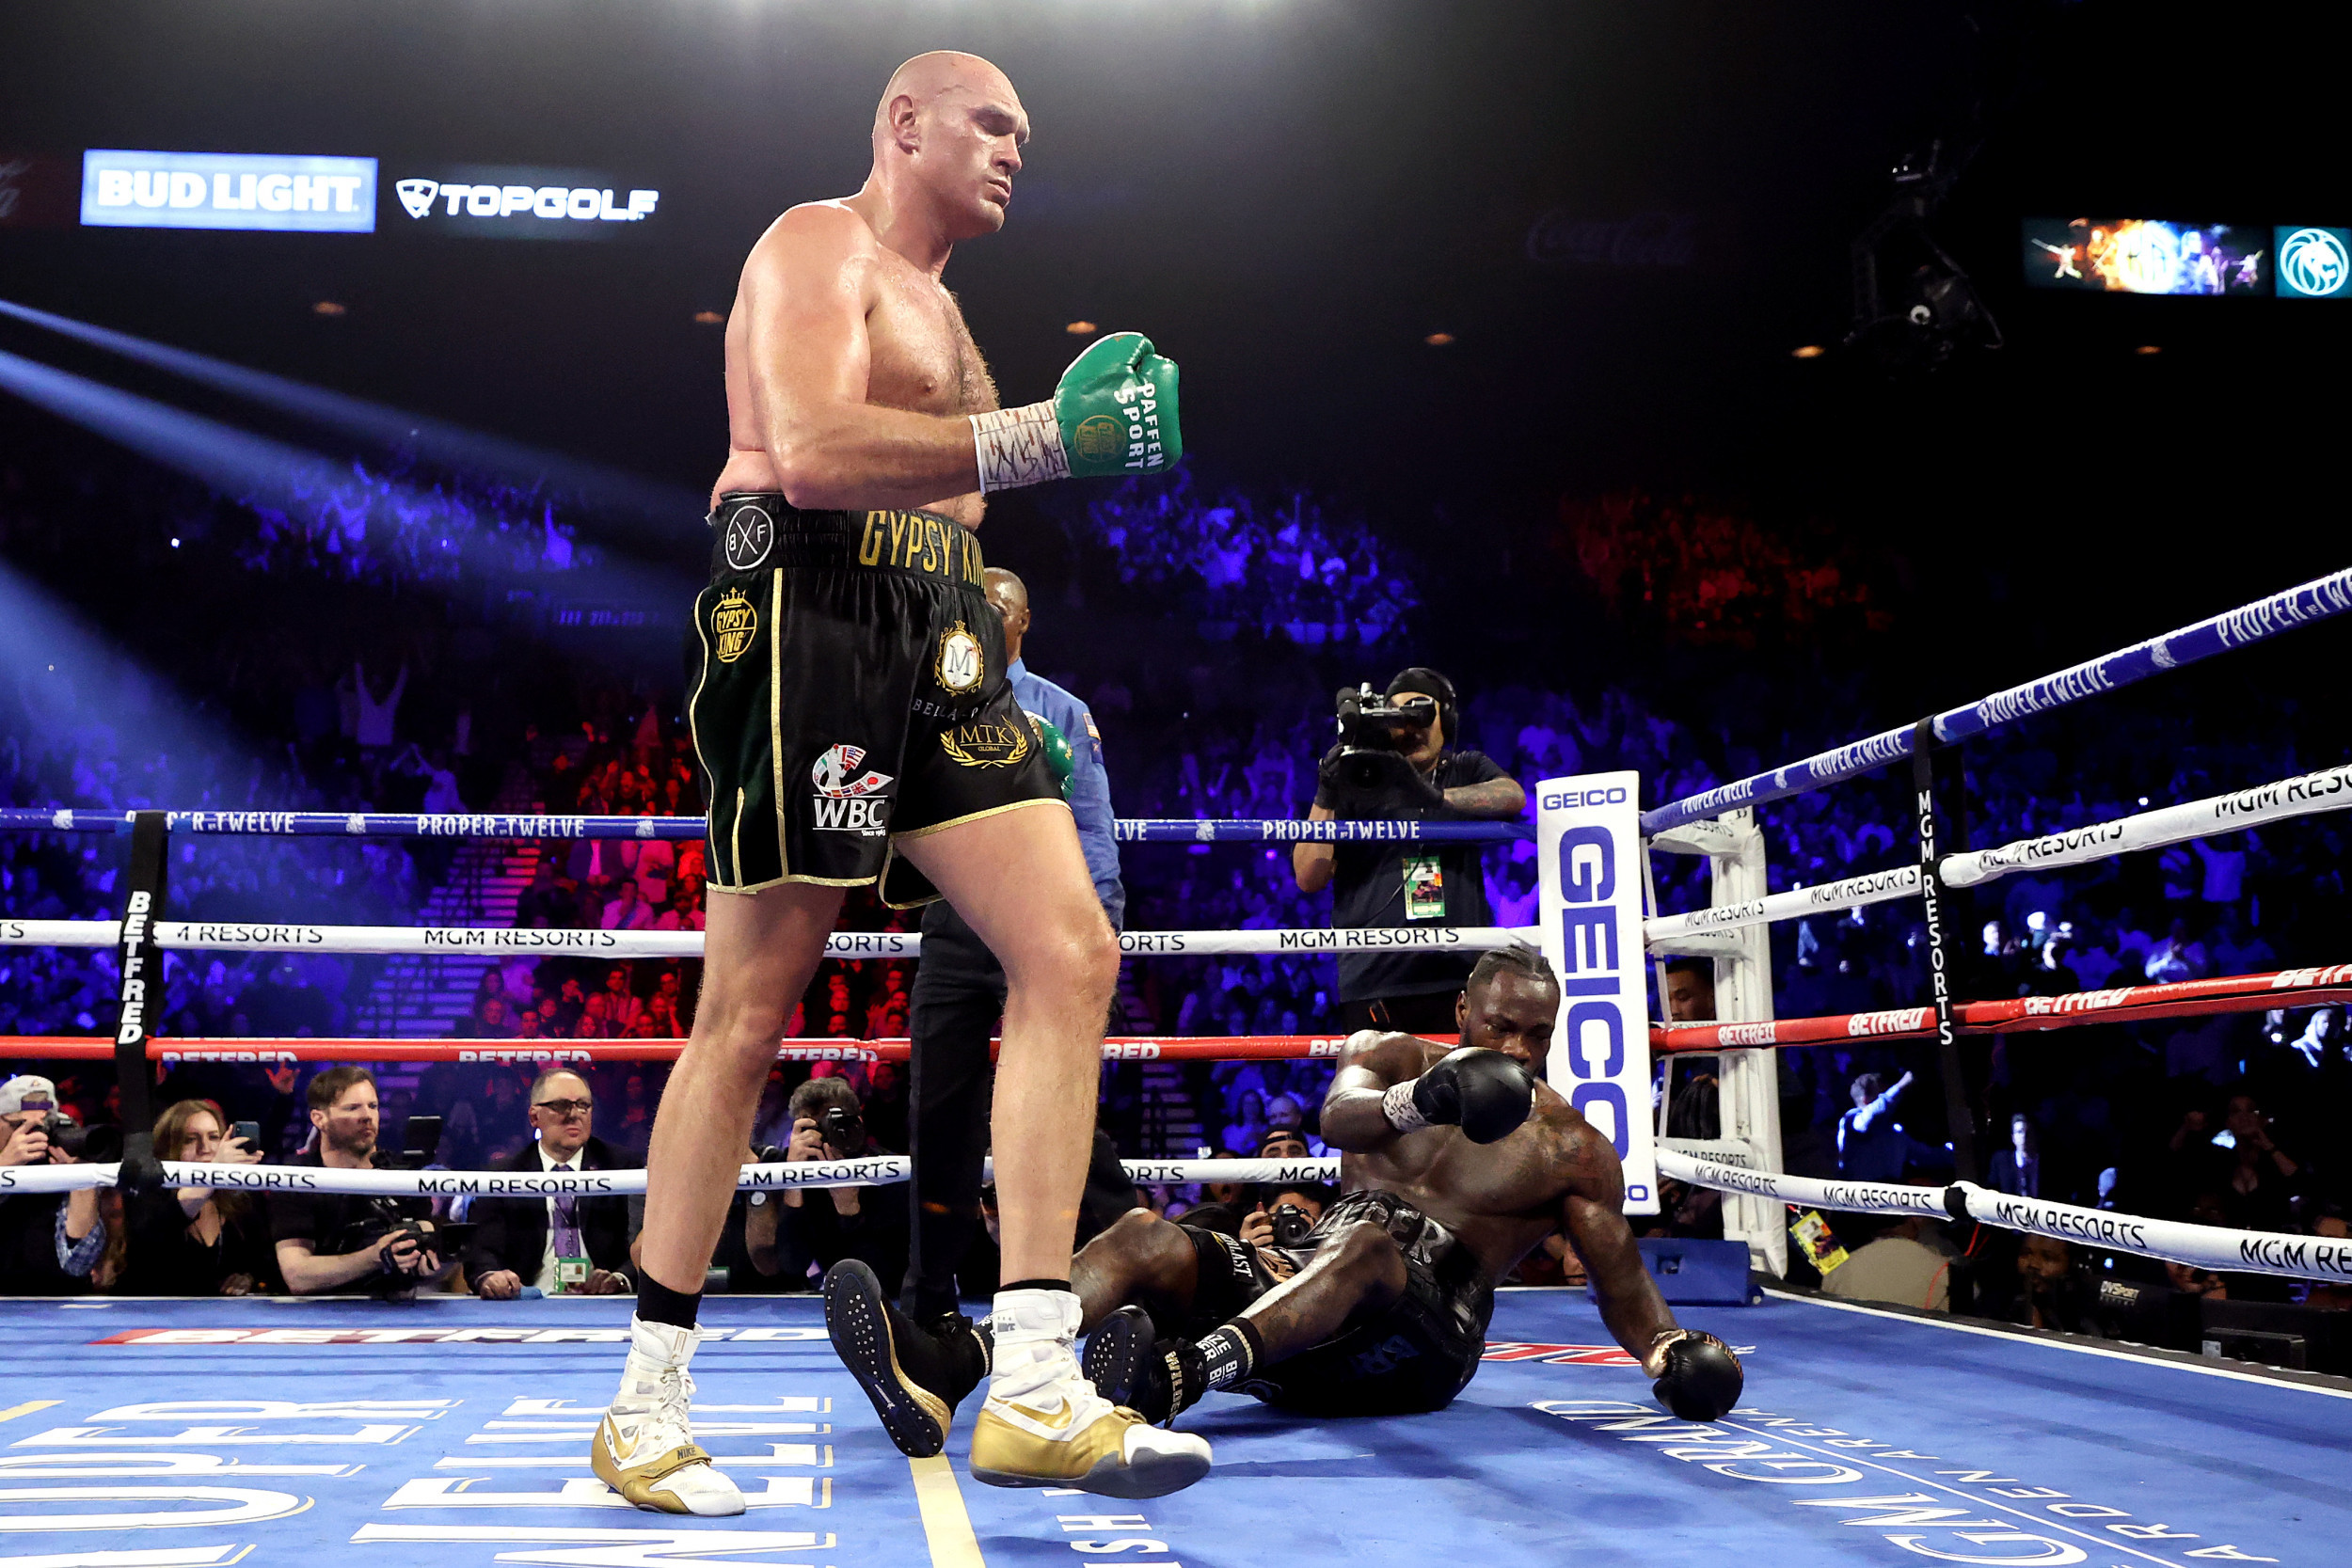 TYSON FURY VS DEONTAY WILDER TRILOGY FIGHT REARRANGED FOR OCTOBER 9 (PHOTOS)